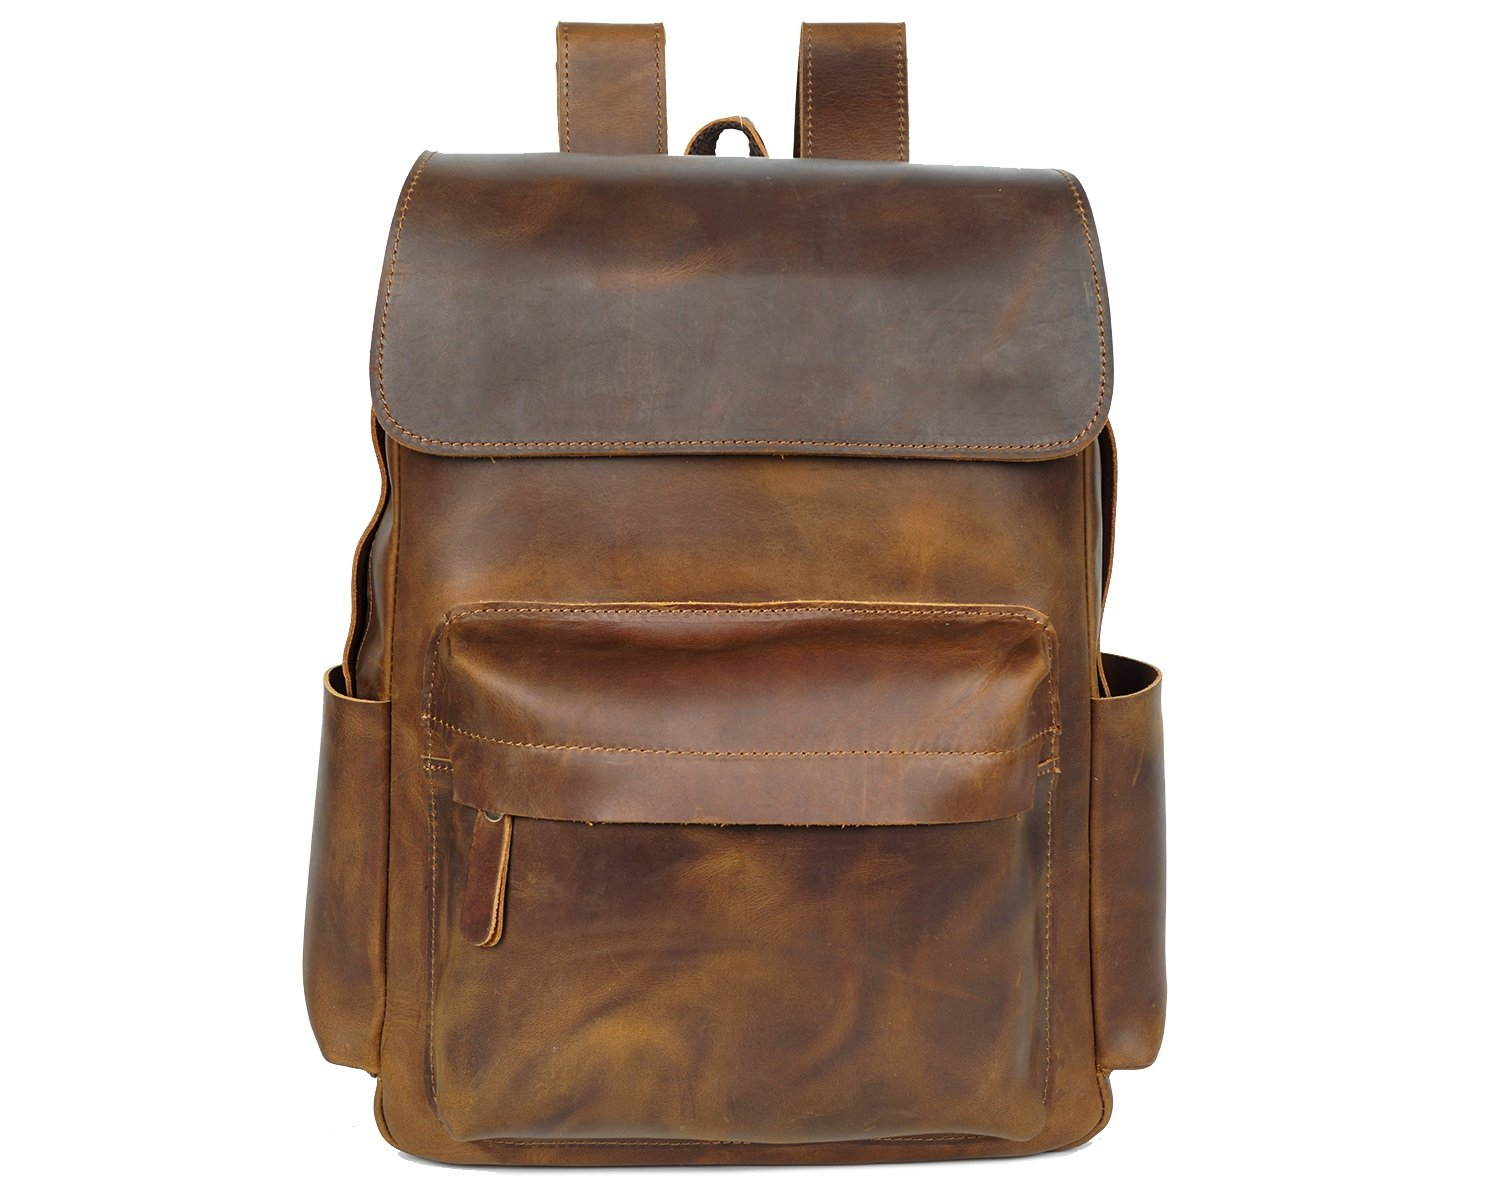 MUMUWU Men's Shoulder Bag Crazy Horseskin Retro Leather First Layer Leather Luggage Backpack Leather Bag for Business Travel (Color : Brass, Size : M)